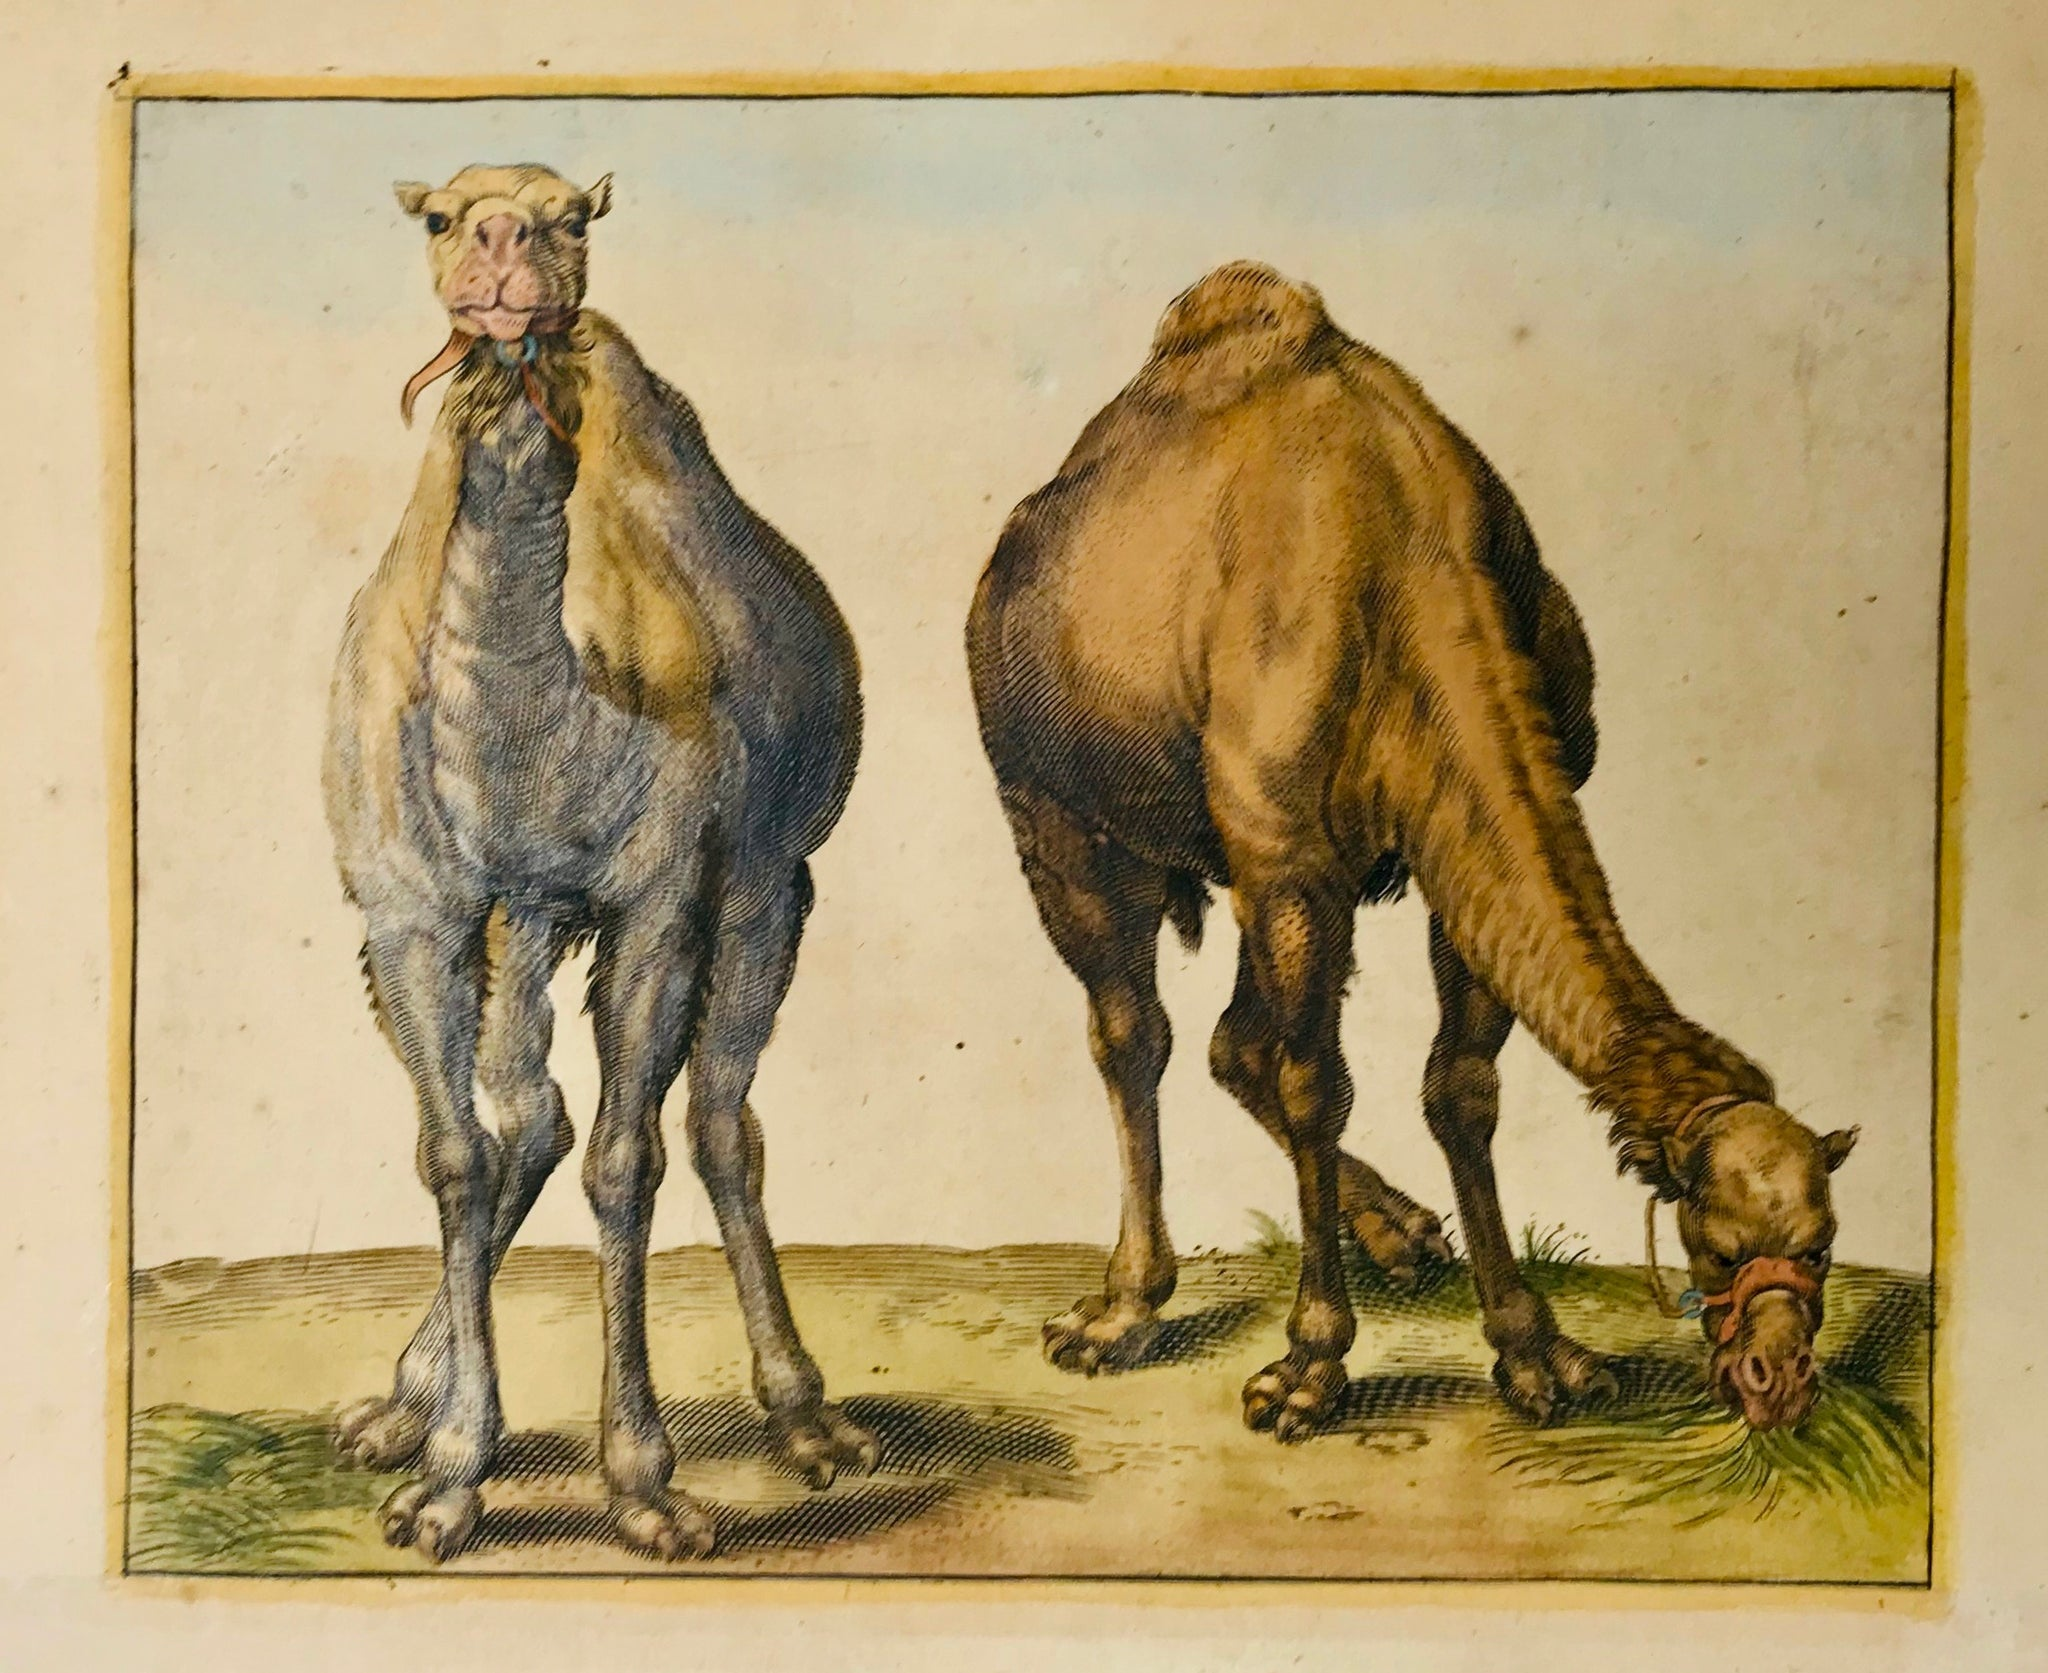 Camels: No title  Copper engraving ca 1760. Hand colored with eggwhite emphasis.